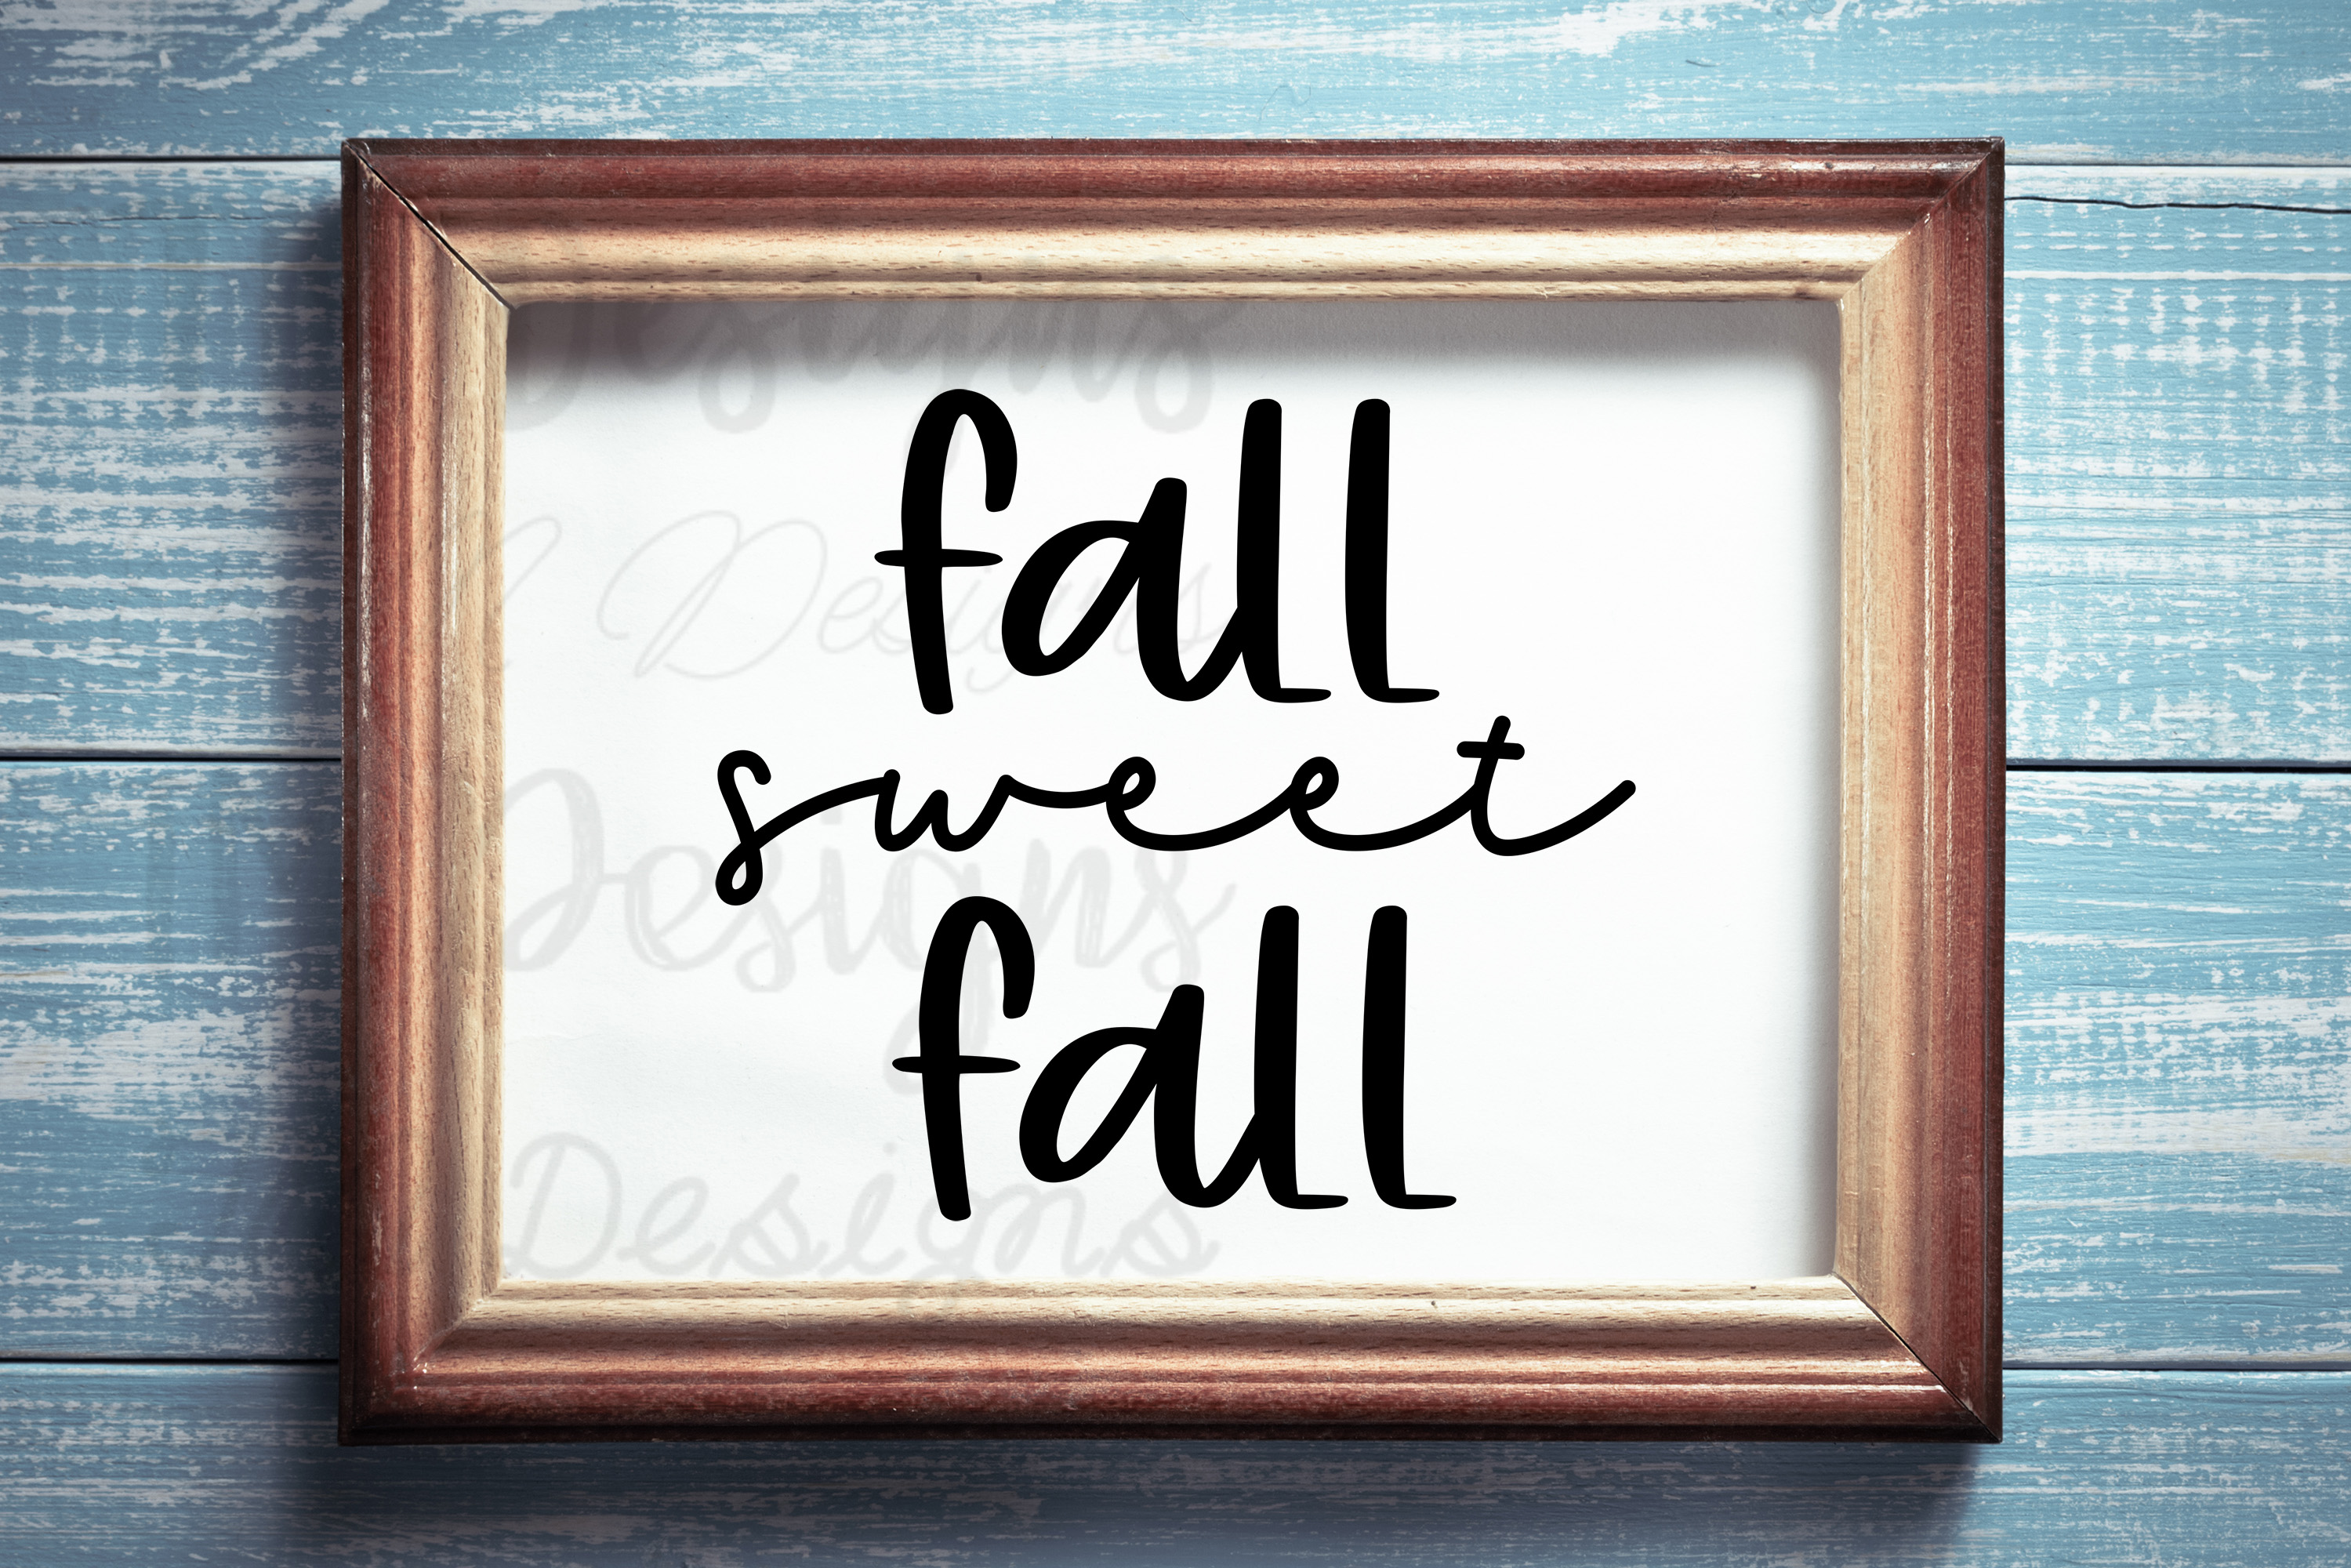 Download Free Fall Sweet Fall Graphic By Tabitha Beam Creative Fabrica for Cricut Explore, Silhouette and other cutting machines.